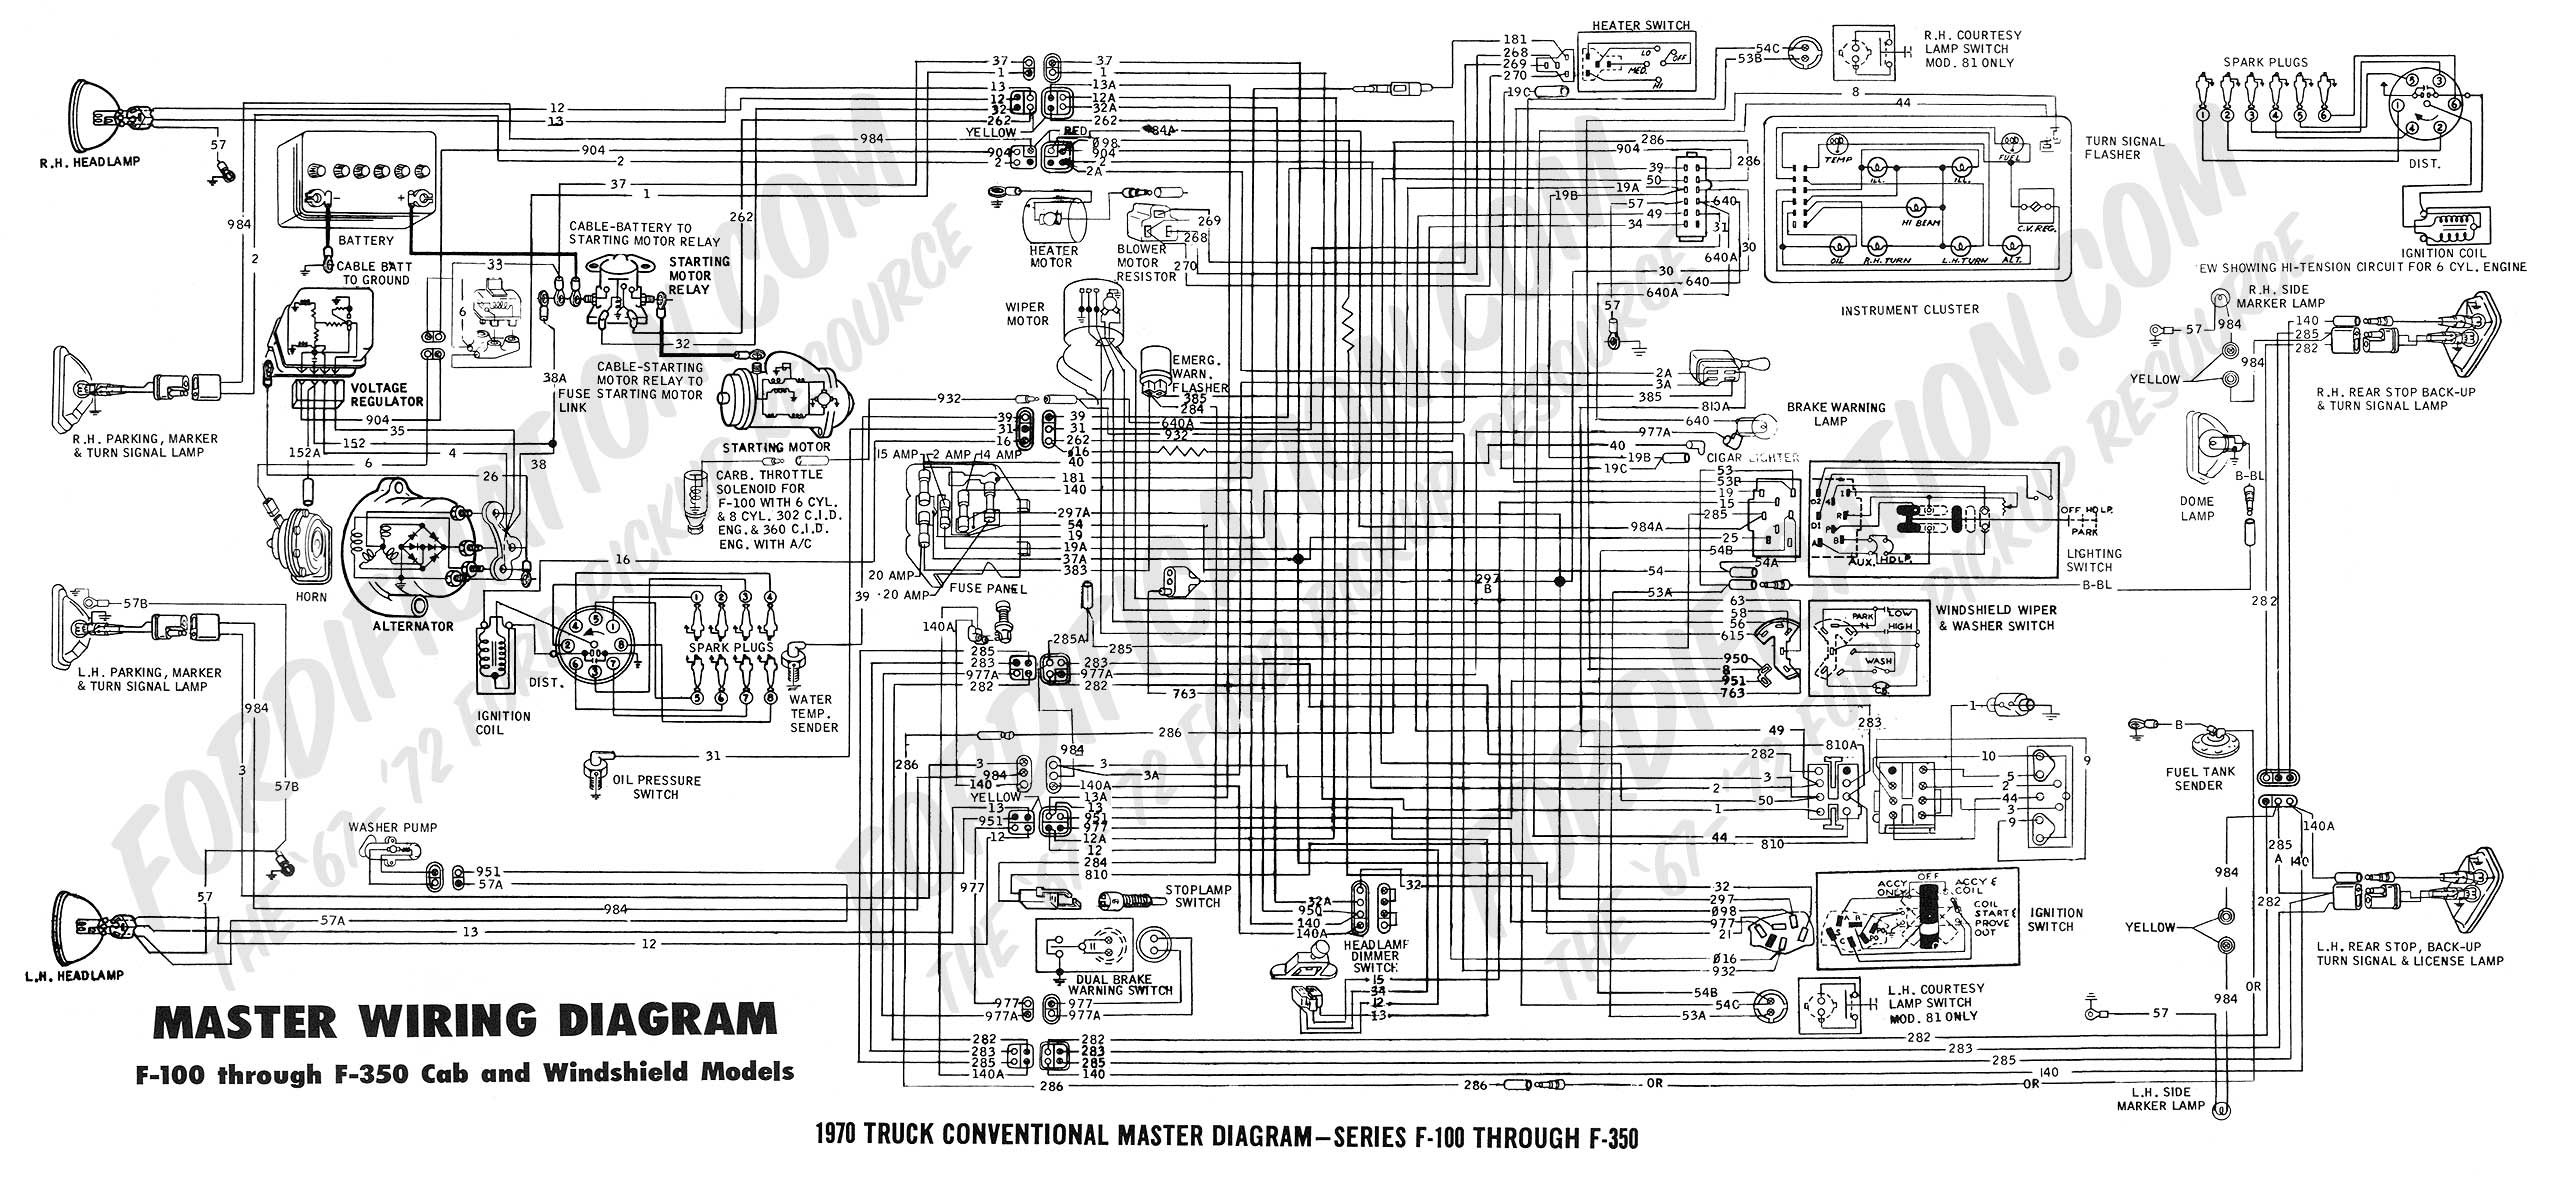 1988 toyota pickup wiring diagram ford truck technical drawings and schematics section h wiring  ford truck technical drawings and